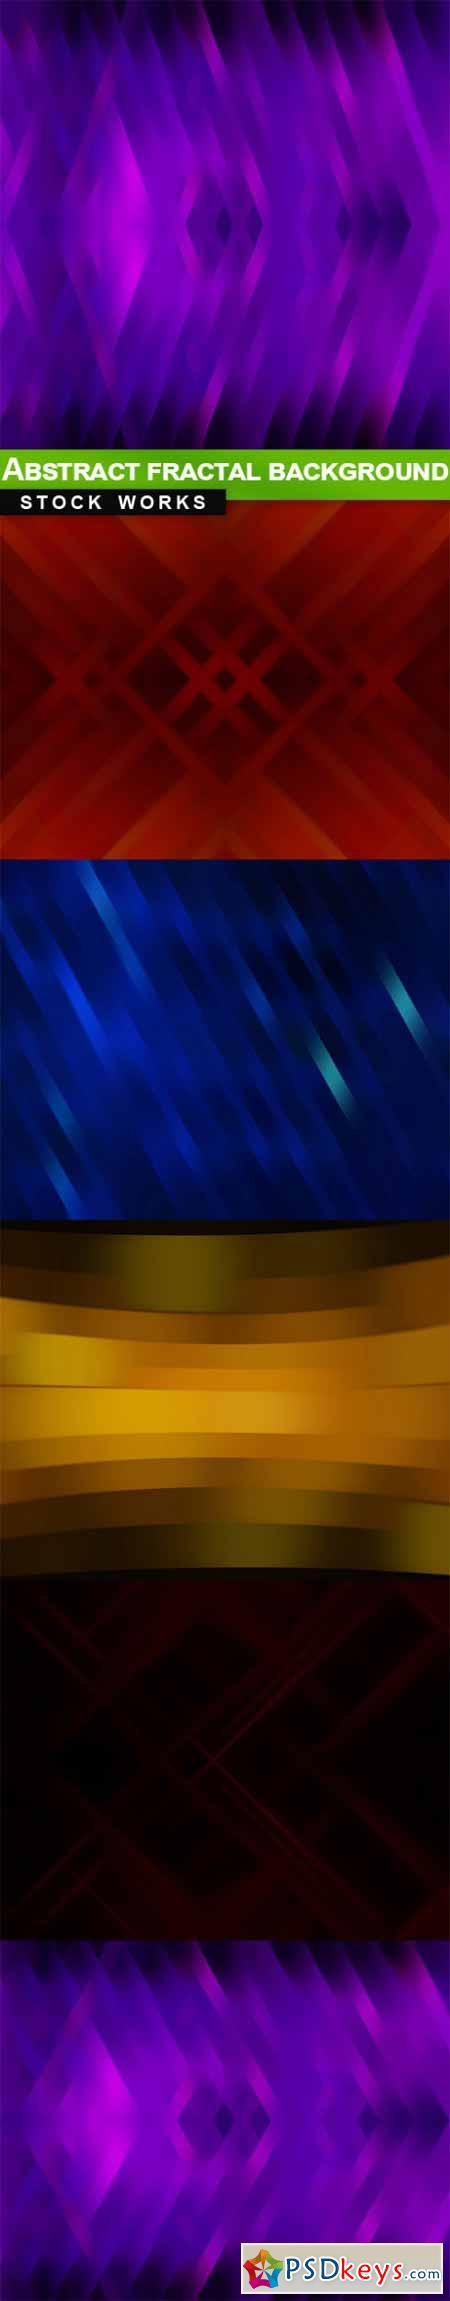 Abstract fractal background - 5 UHQ JPEG